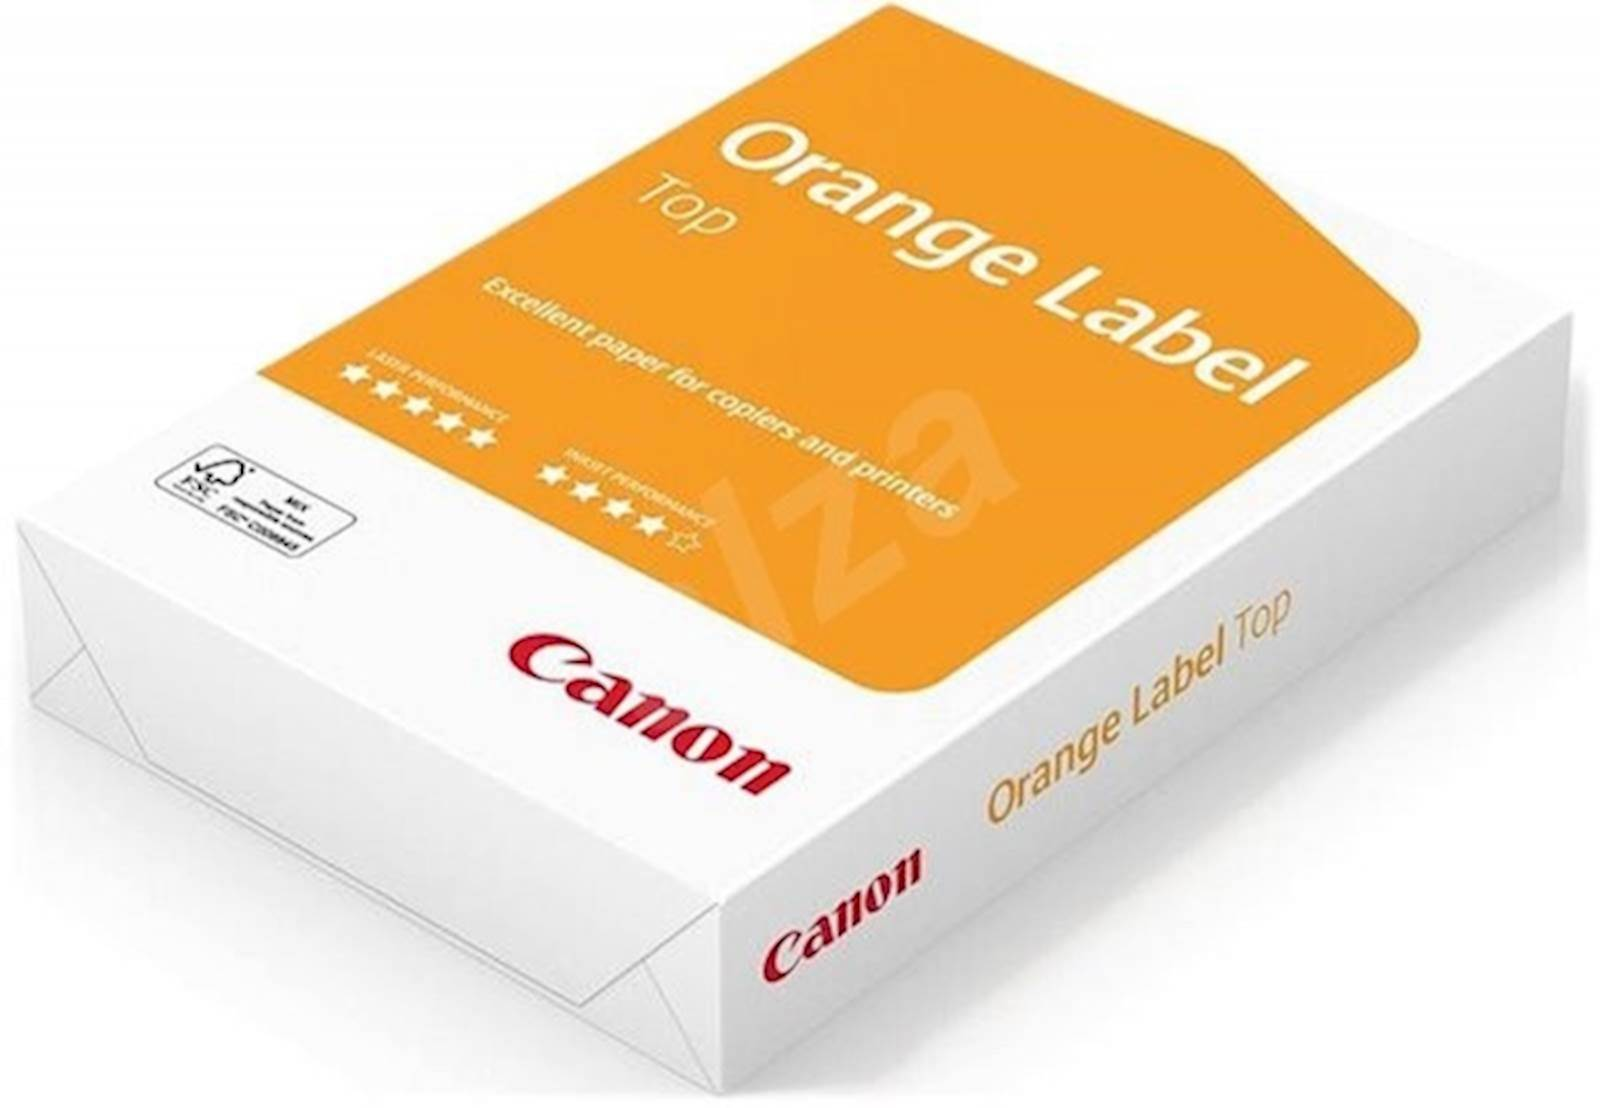 Papir CANON A4 Orange Label 80g